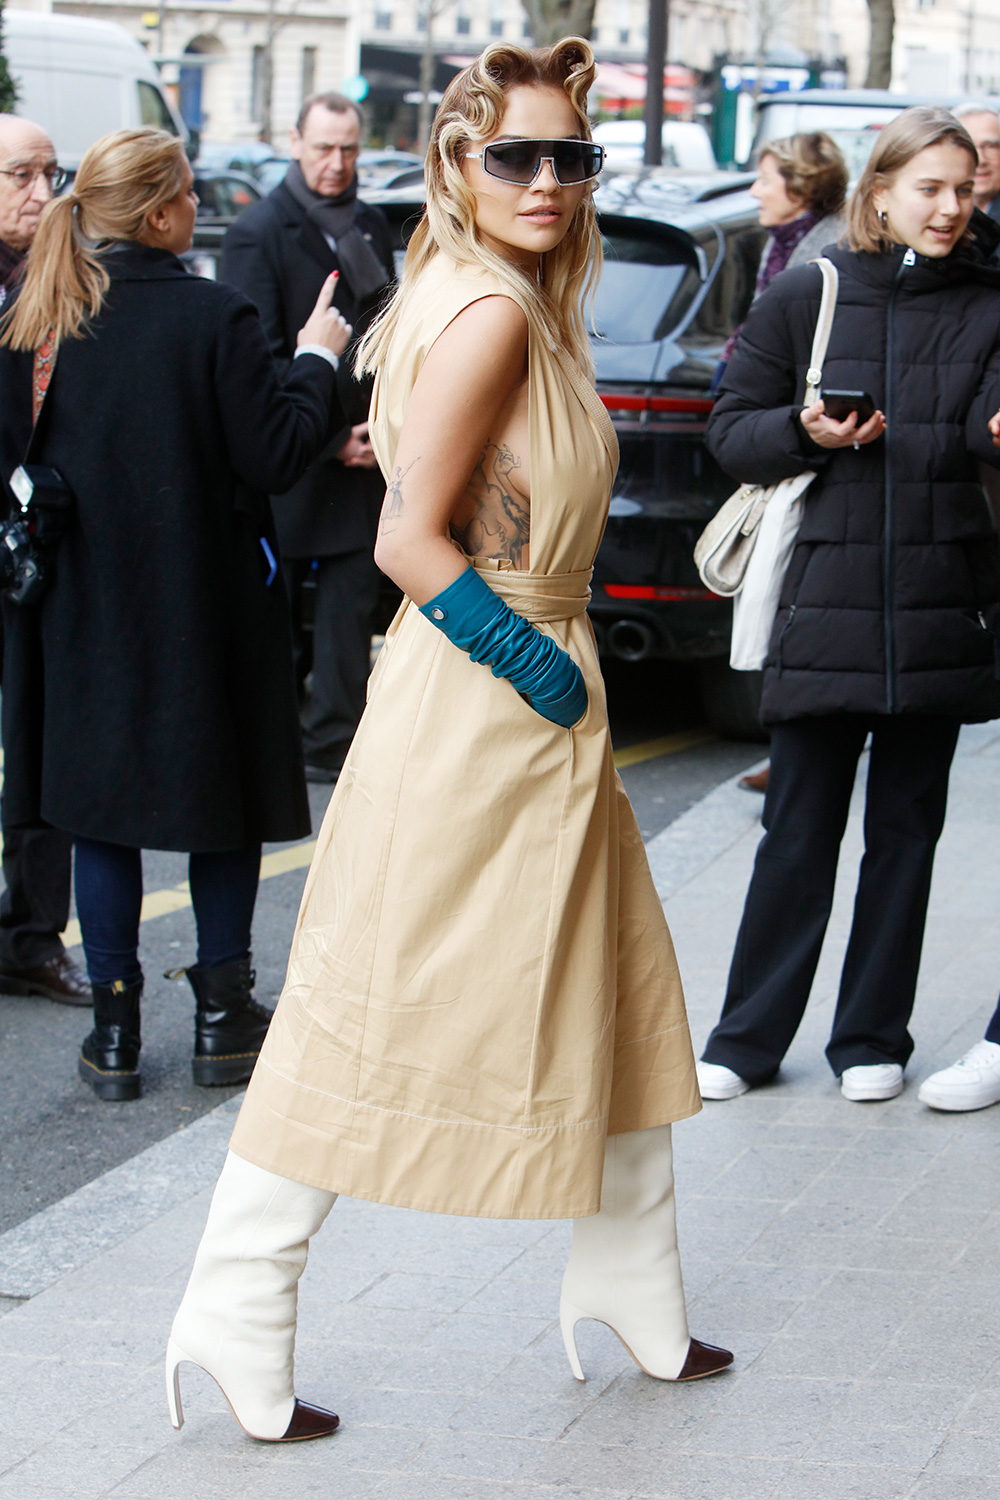 Rita Ora flashes side boob as she arrives in a stunning gold outfit during Paris Fashion Week. Paris. Paris, France - Tuesday March 3, 2020. USA